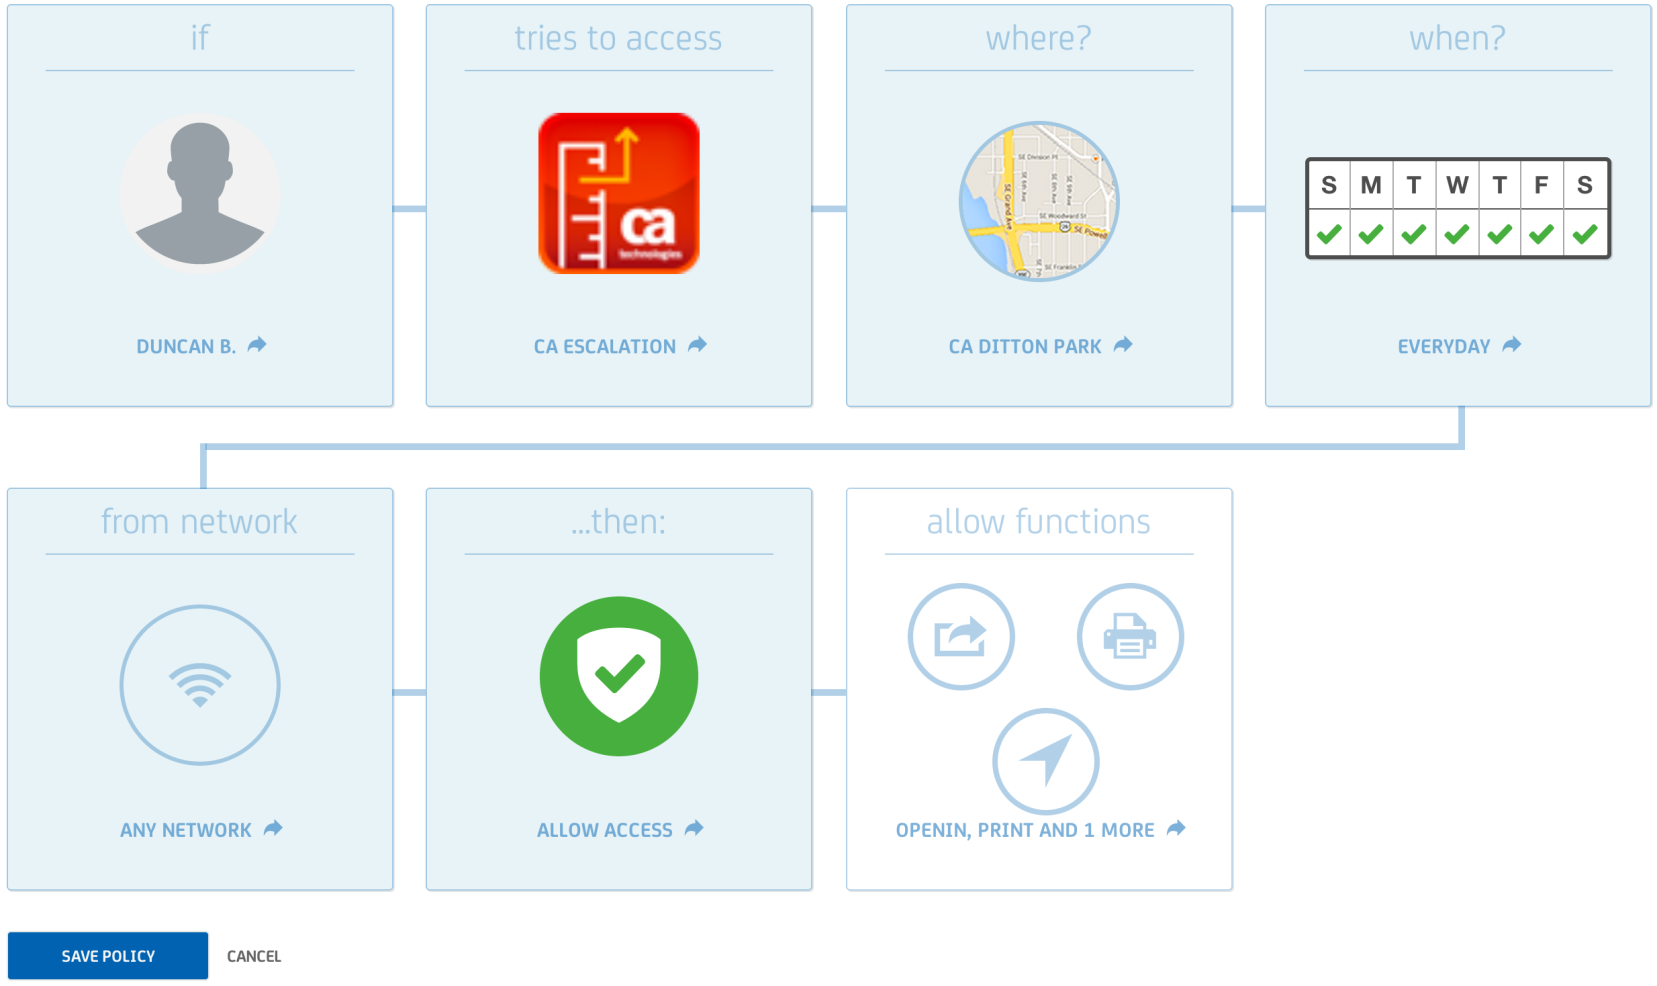 CA Mobile Application Management (CA